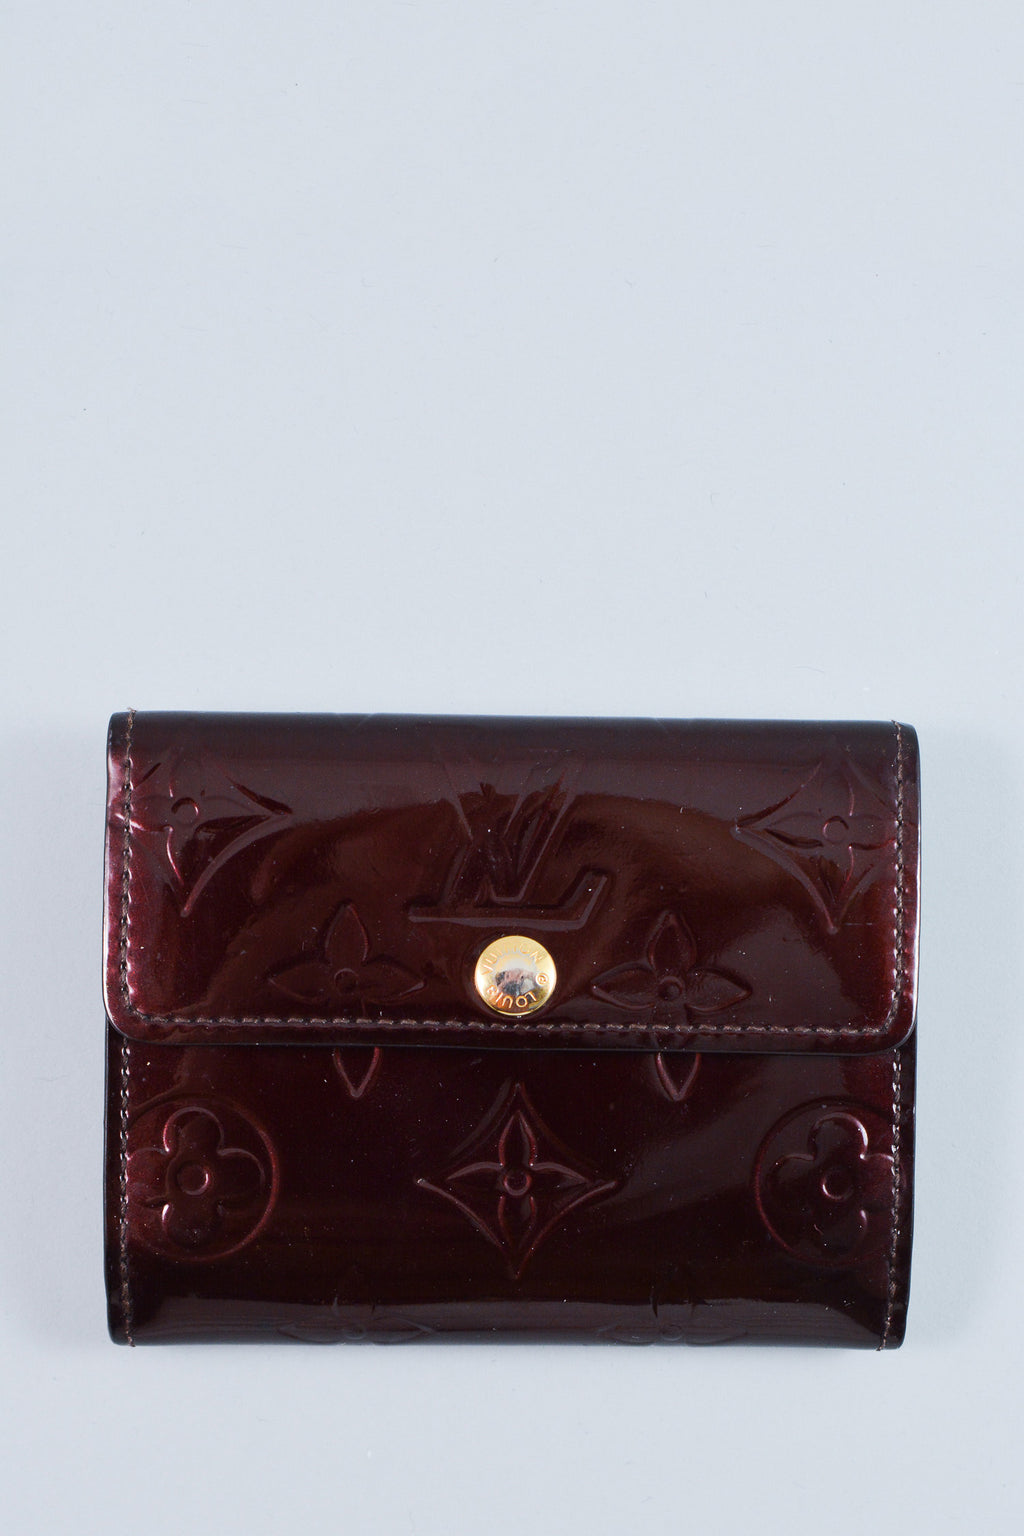 Louis Vuitton Burgundy Vernis Wallet